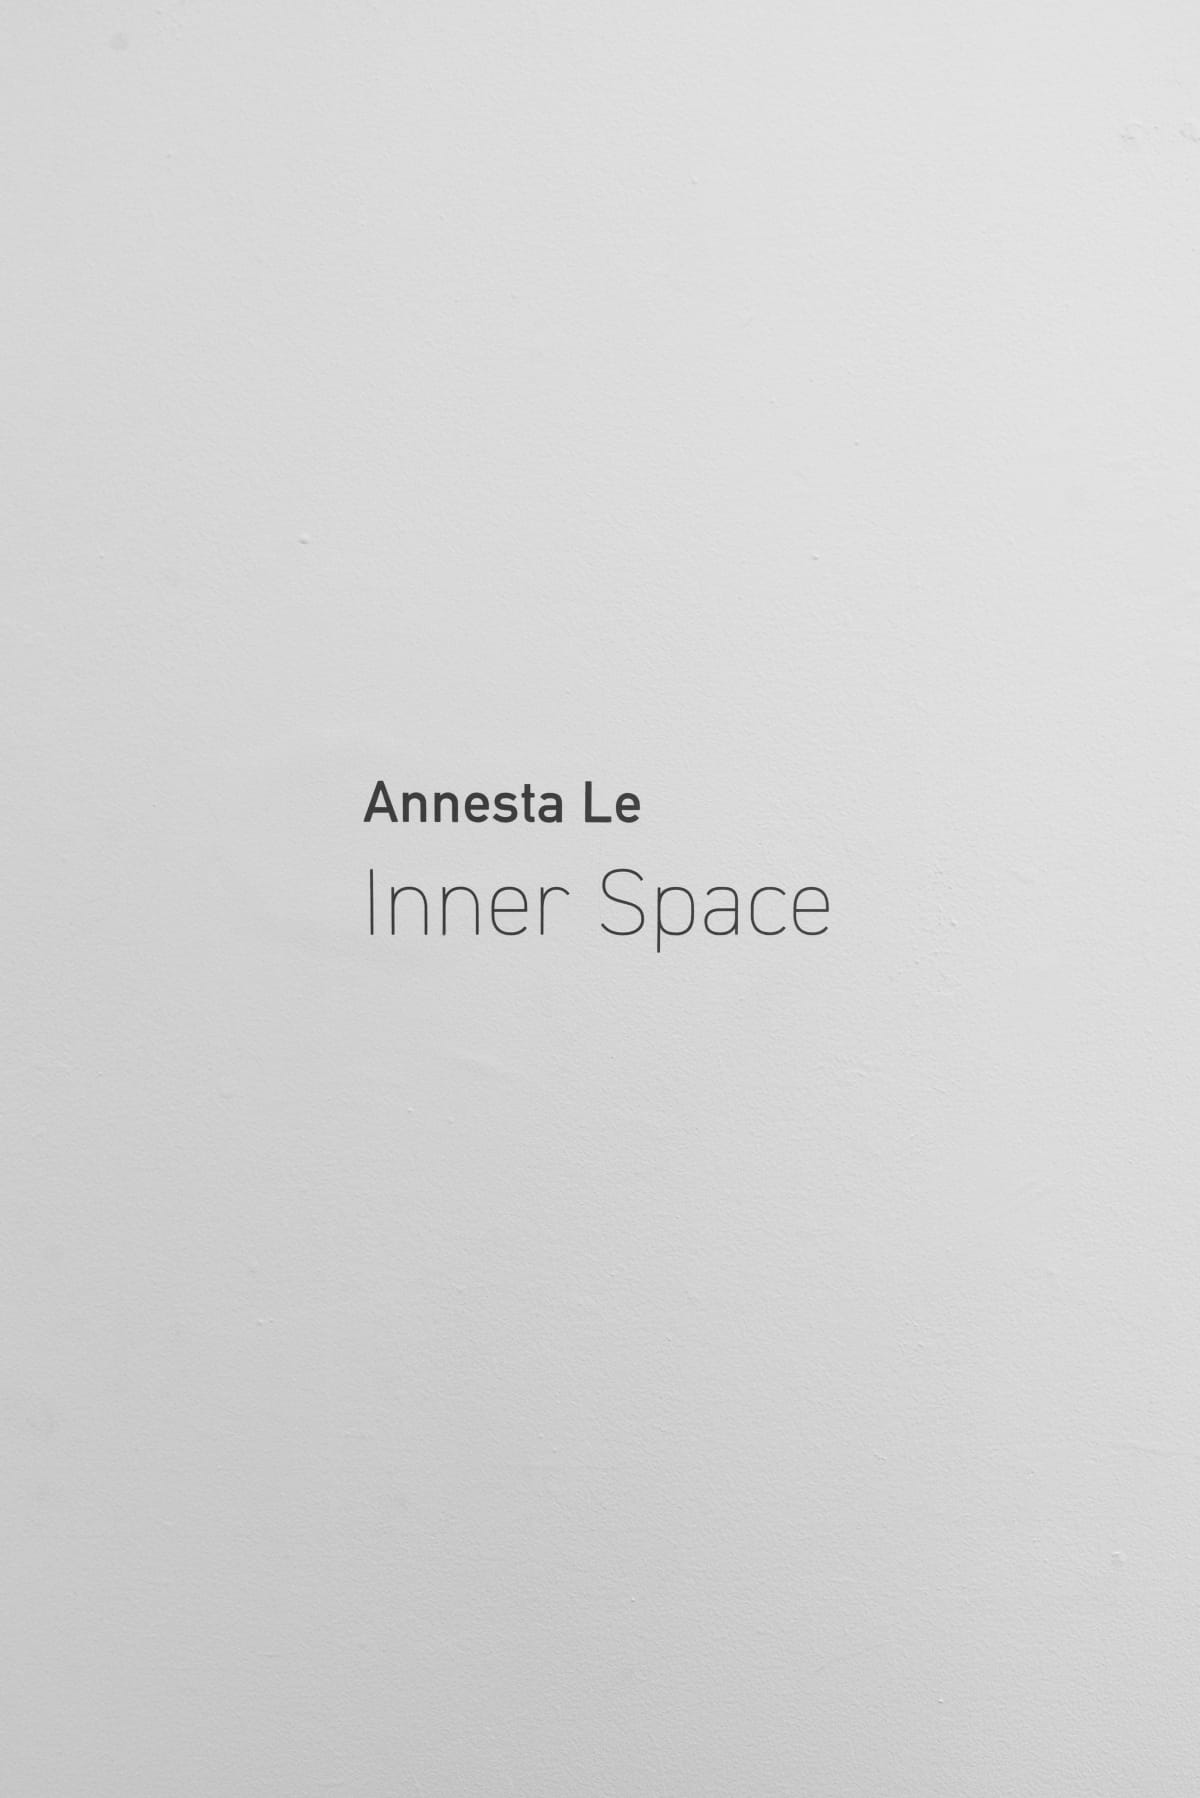 Annesta Le Inner Space Wall Text Yi Gallery 2020